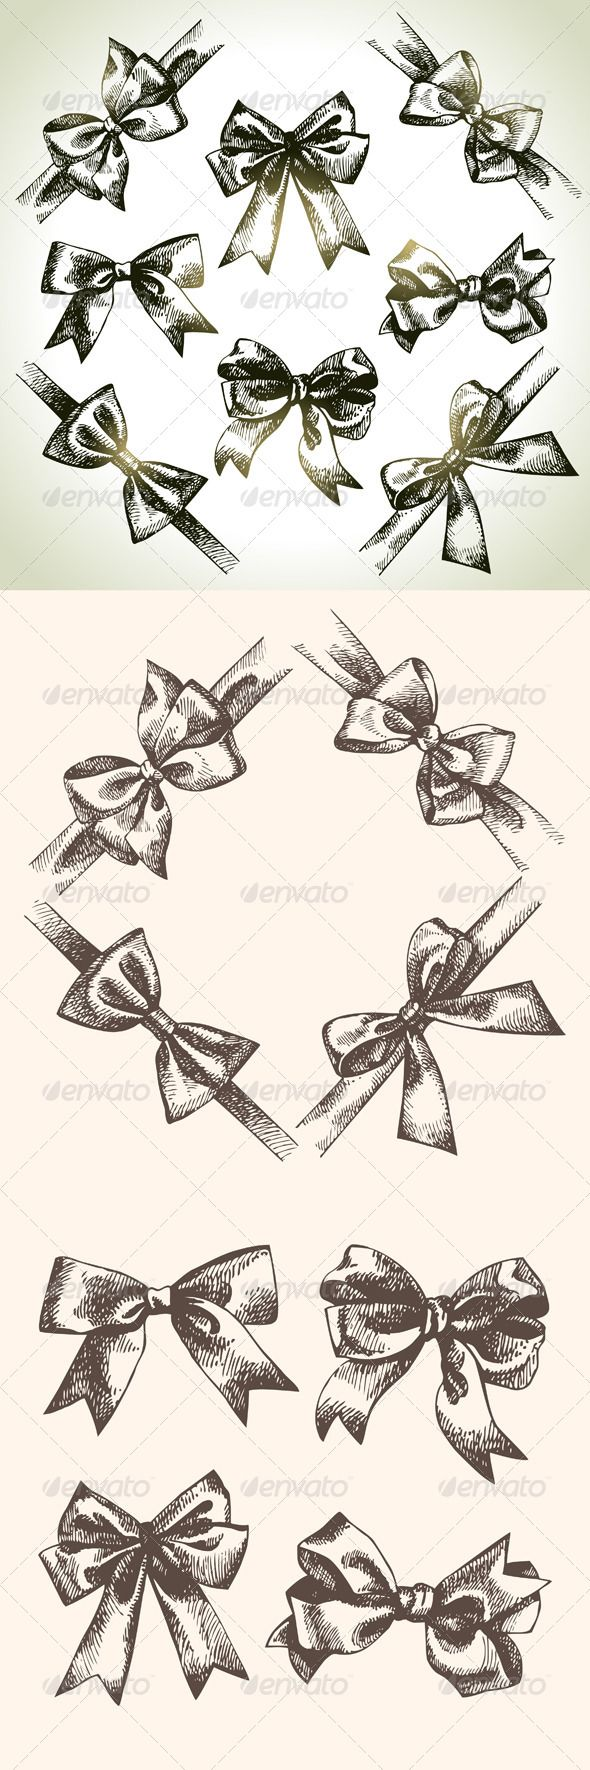 Hand Drawn Bow Set  #GraphicRiver         Set of hand drawn vintage bow and ribbon illustrations.  	 This illustrations can be used in design of printed materials (brochures, invitations, postcards), scrapbooking, web design etc.  	 Zip file contains fully editable EPS 10 vector file, AI CS vector file, high resolution JPG & PNG transparent format files.     Created: 28June13